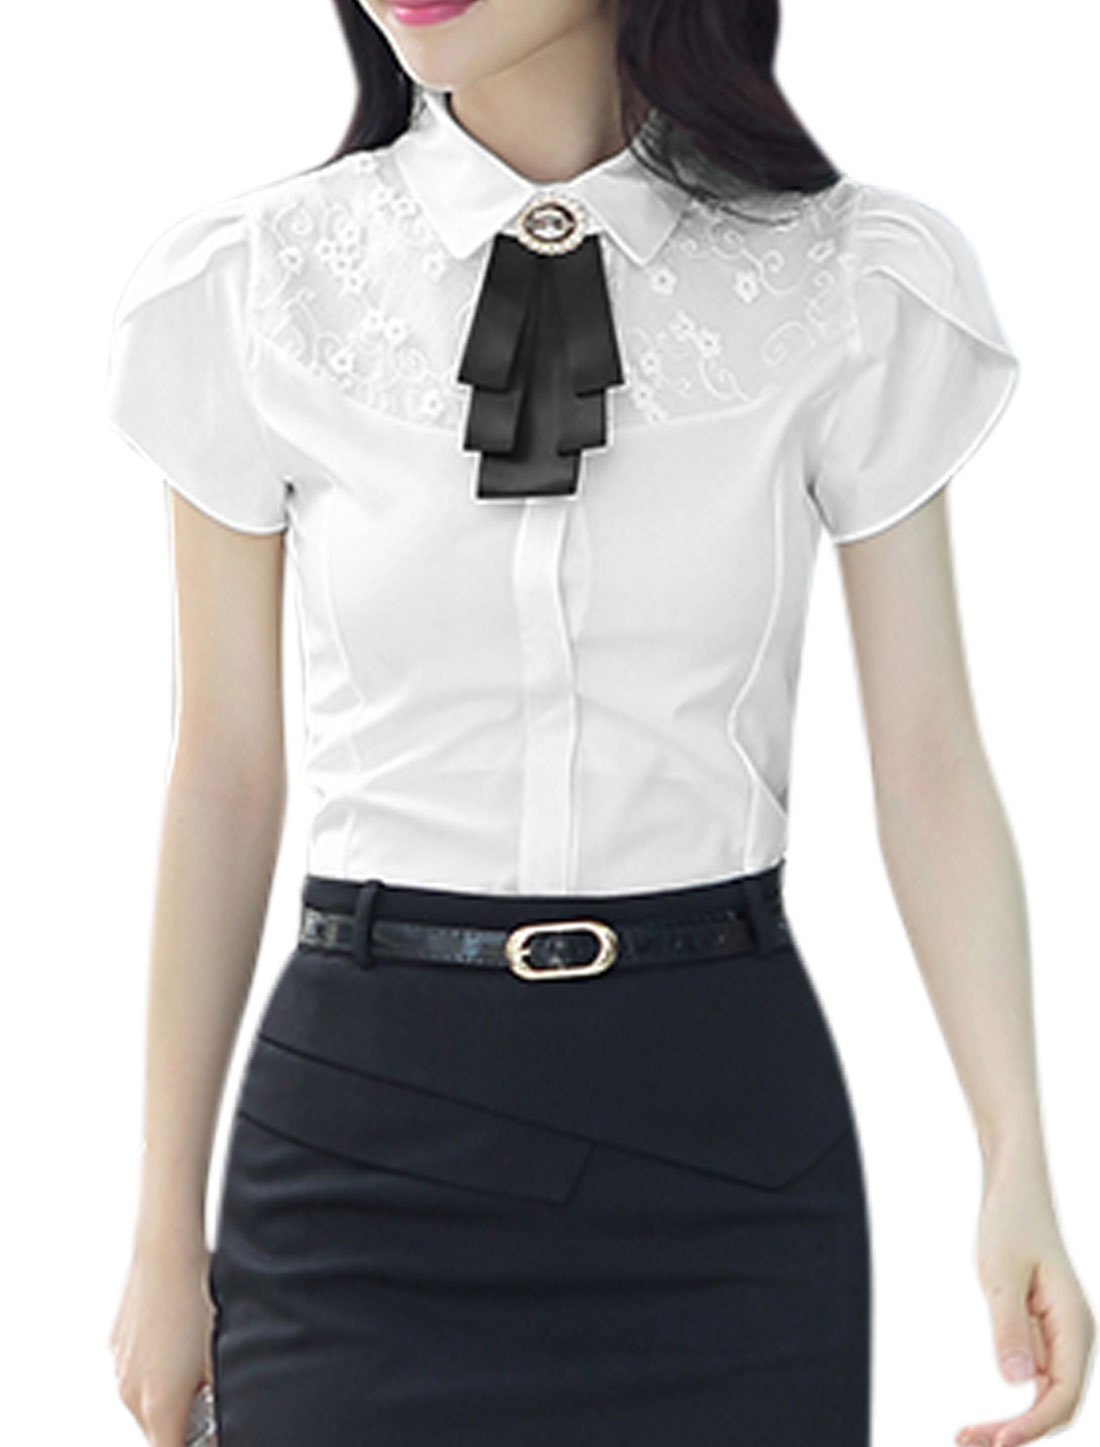 Woman Floral Design Organza Panel Petal Sleeves Shirt w Bow Tie White M